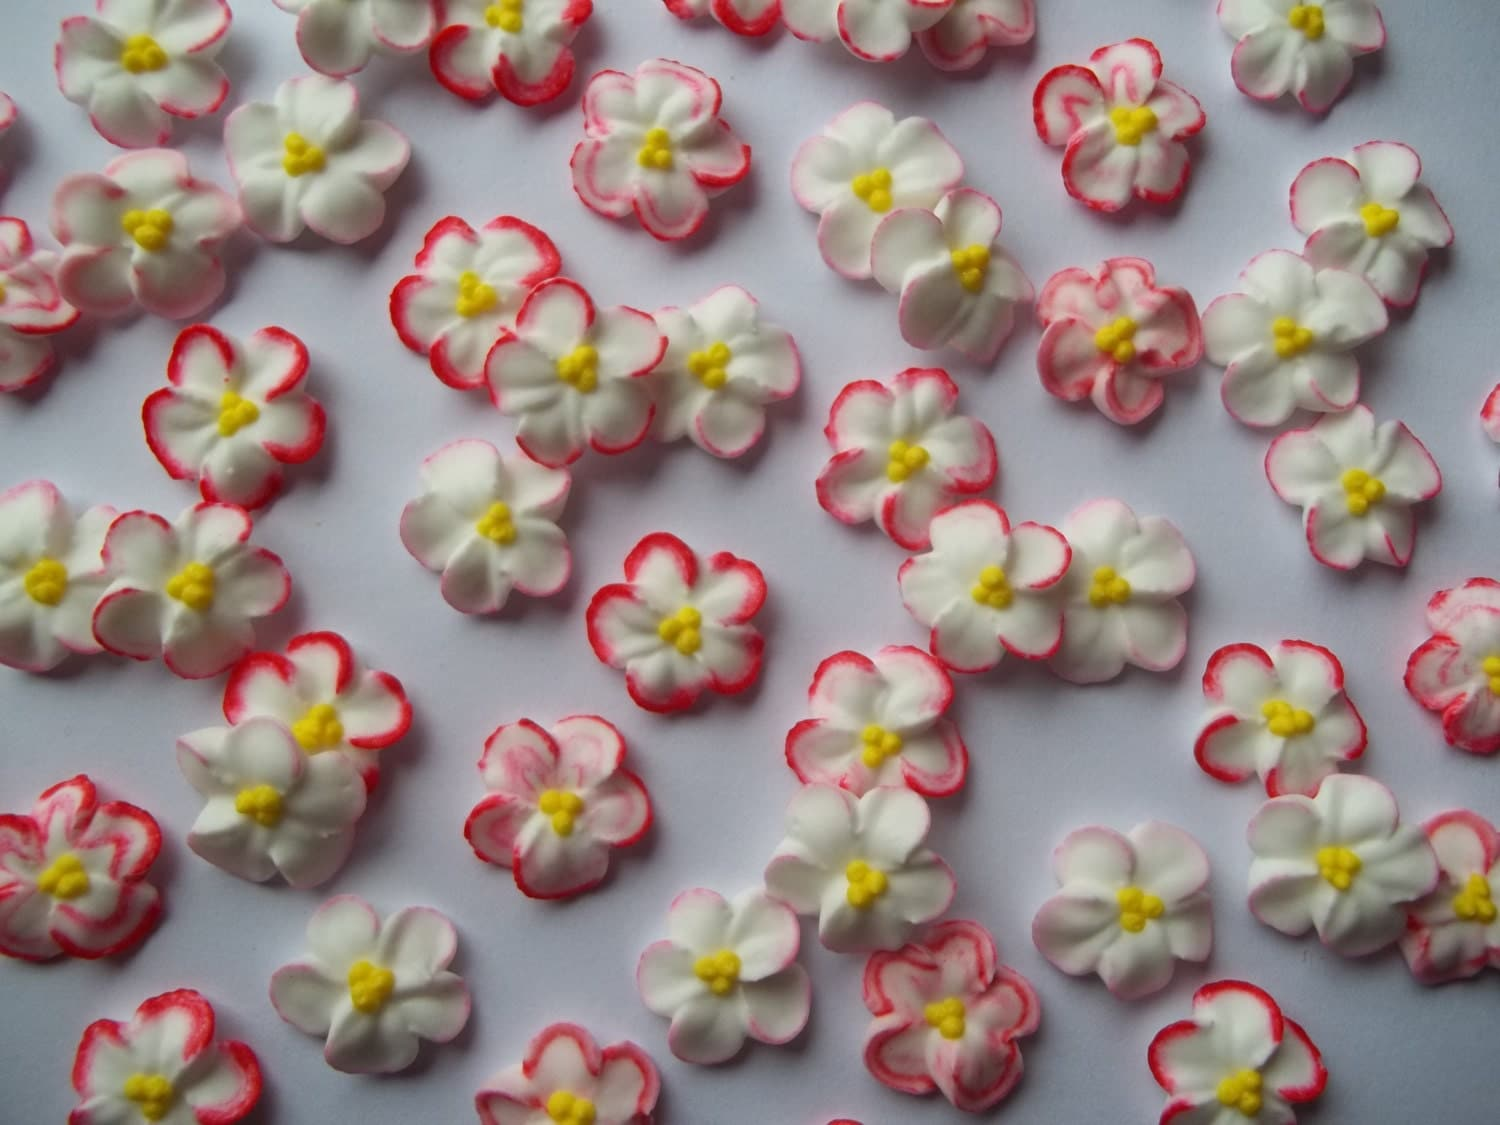 Red-tipped white royal icing flowers by SweetSarahsBoutique